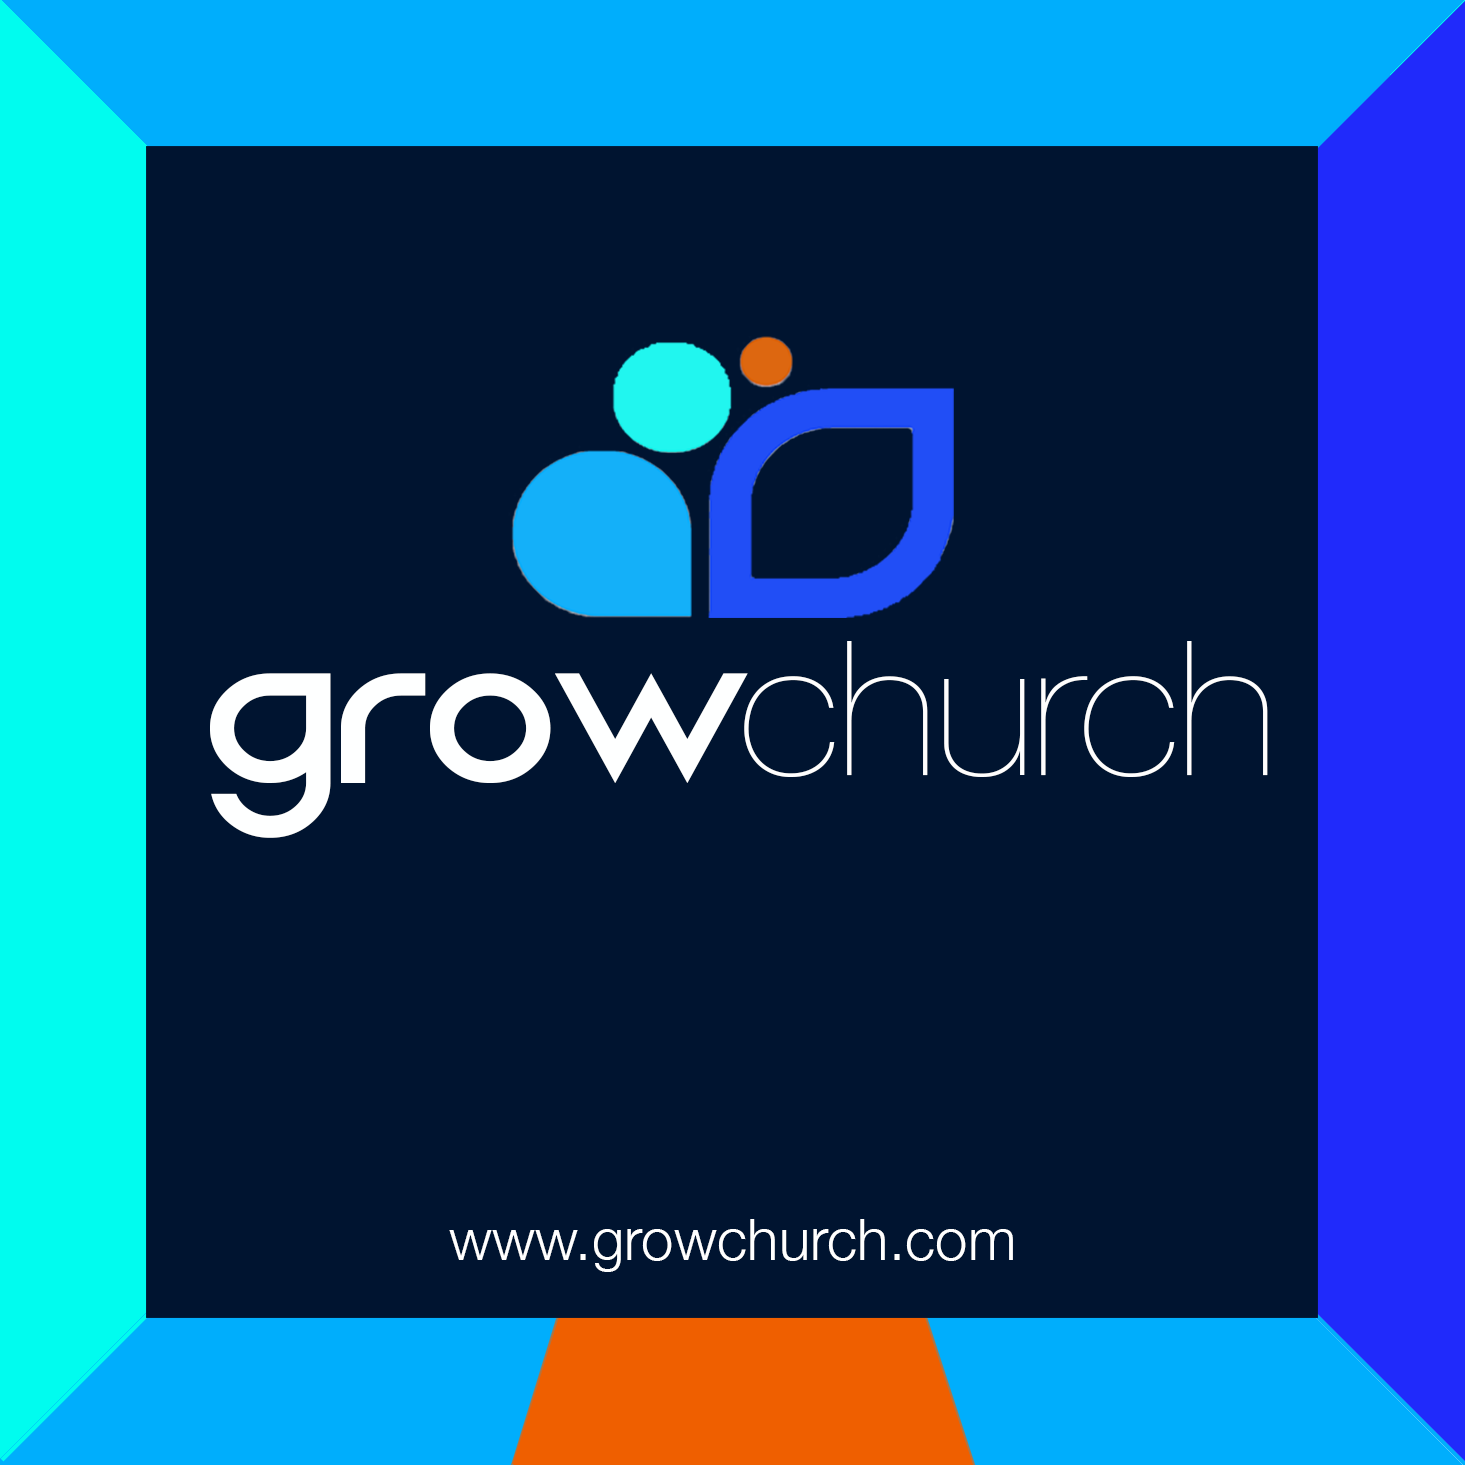 growchurch flyer front